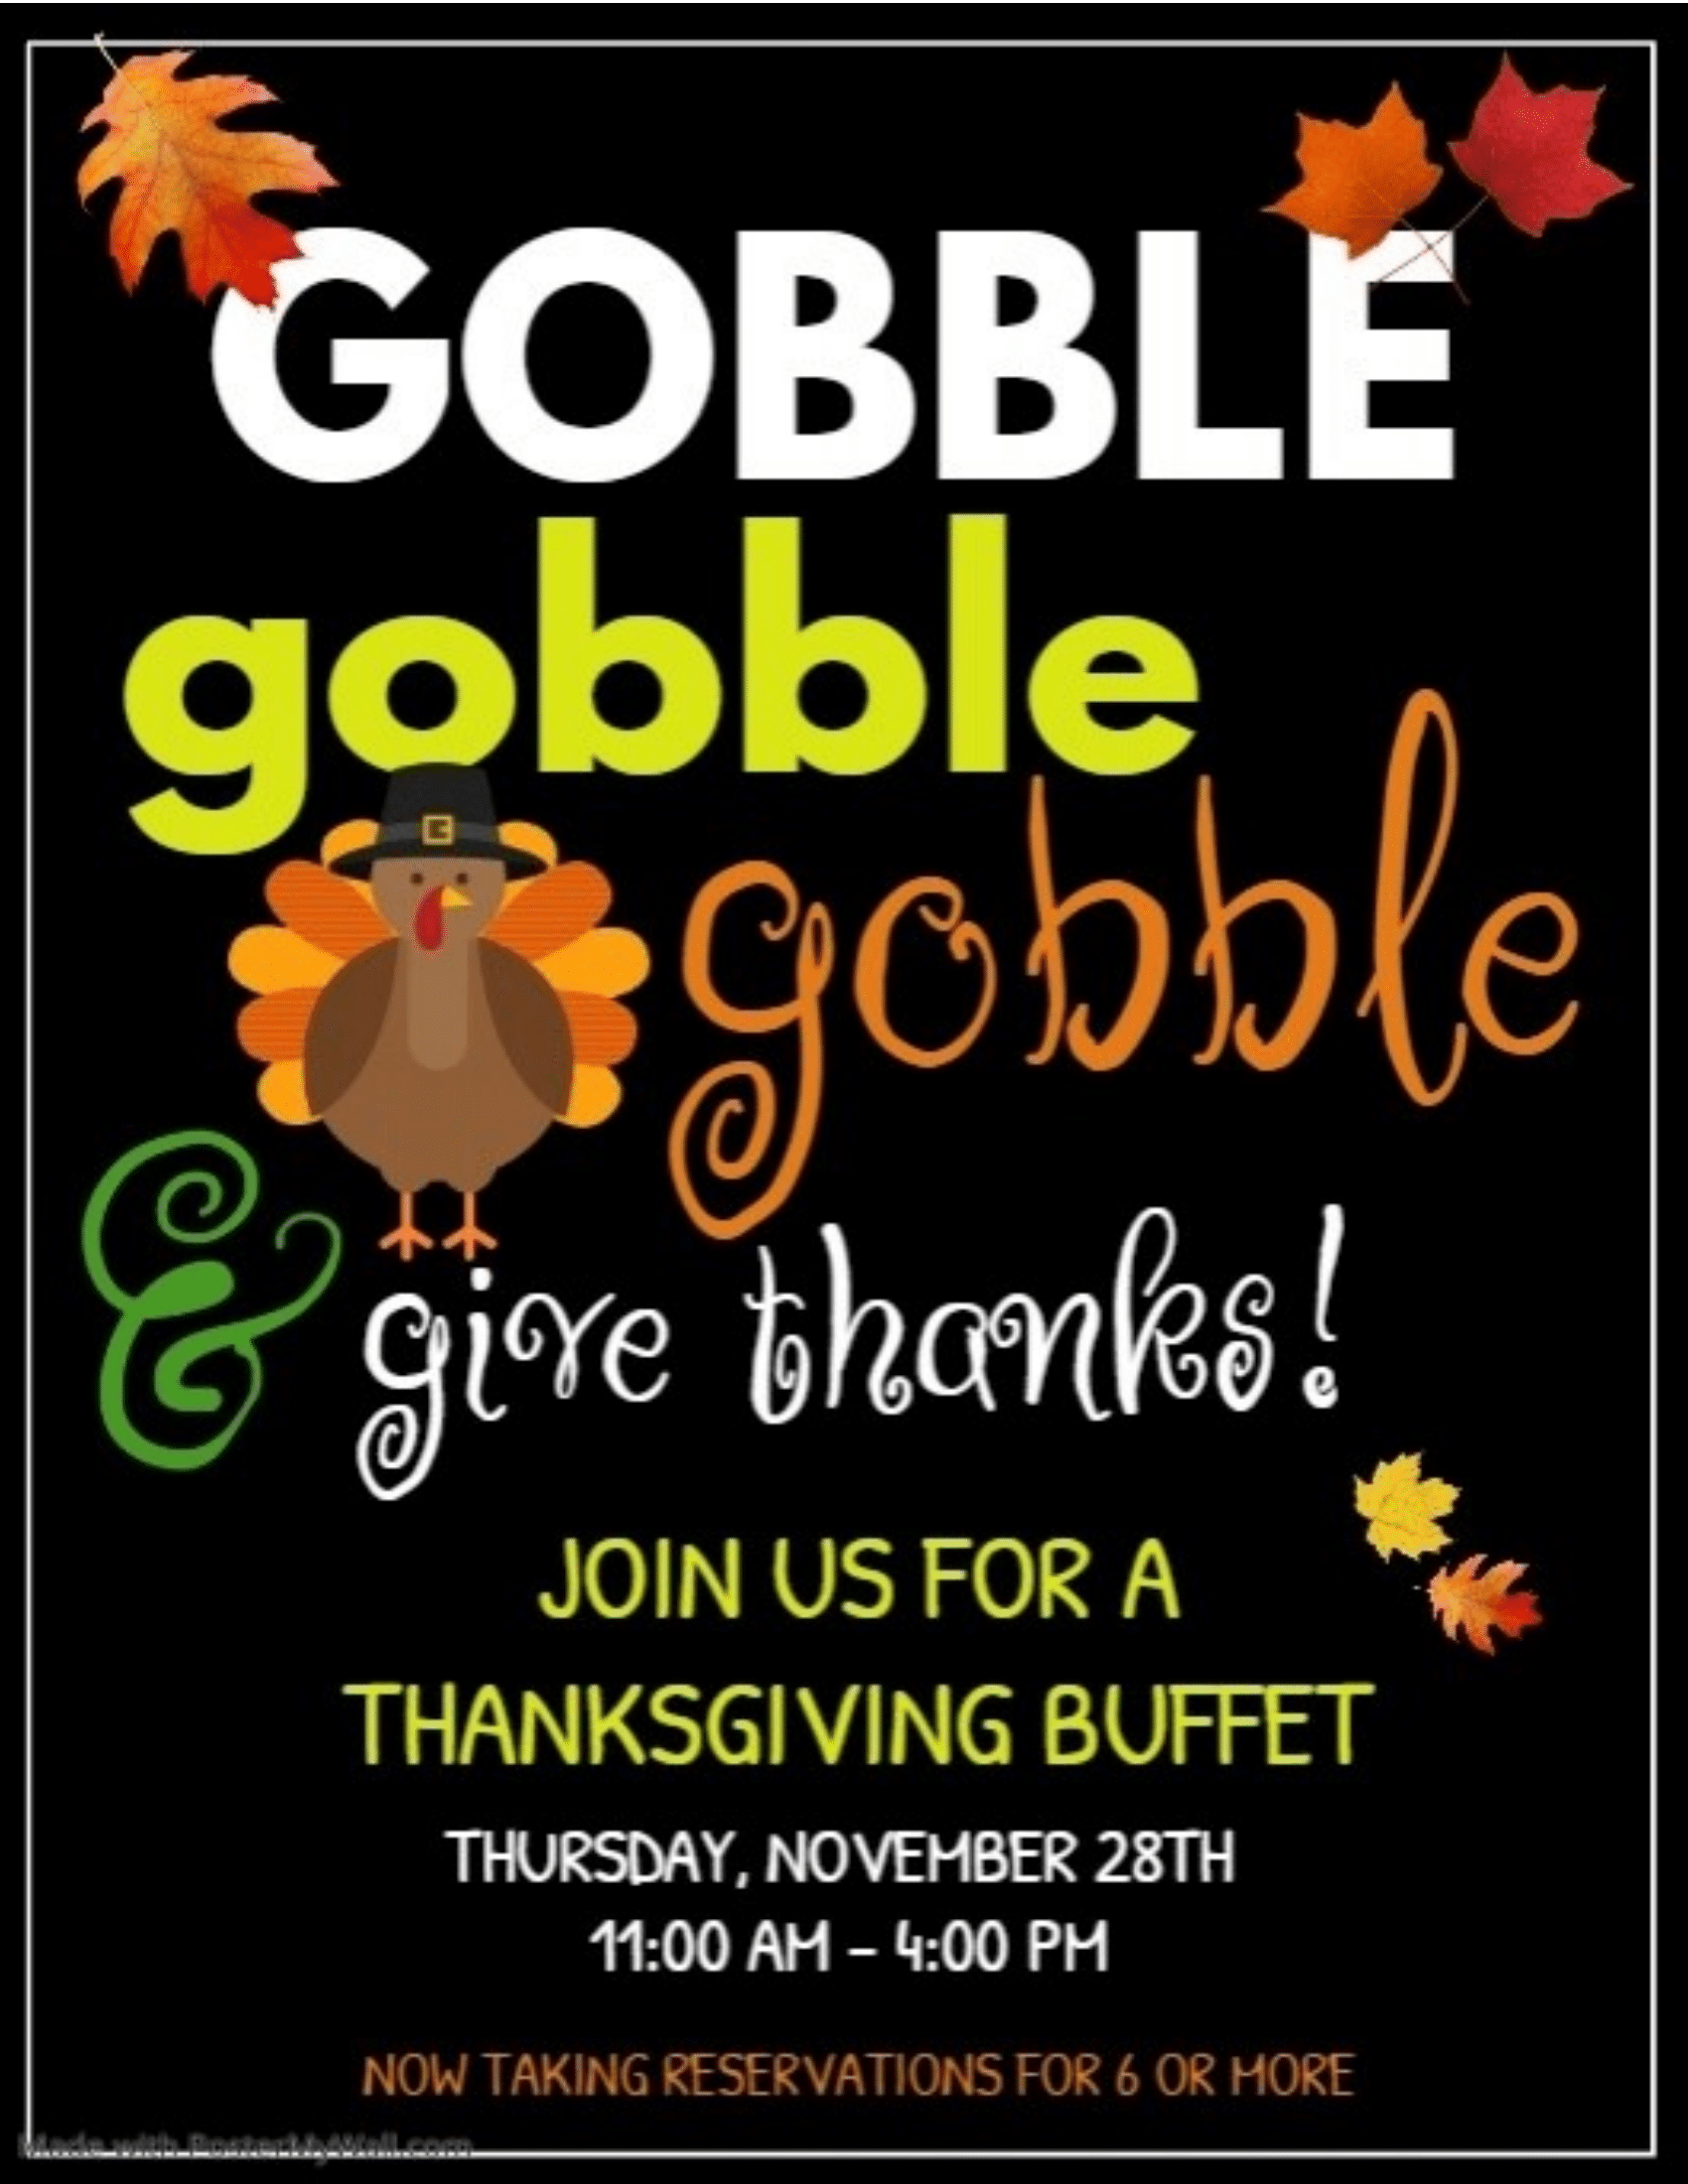 Gobble Gobble Gobble - Give Thanks! Join Us For A Thanksgiving Buffet | Thursday, November 28th | 11:00am - 4:00PM | Now Taking Reservations For 6 Or More